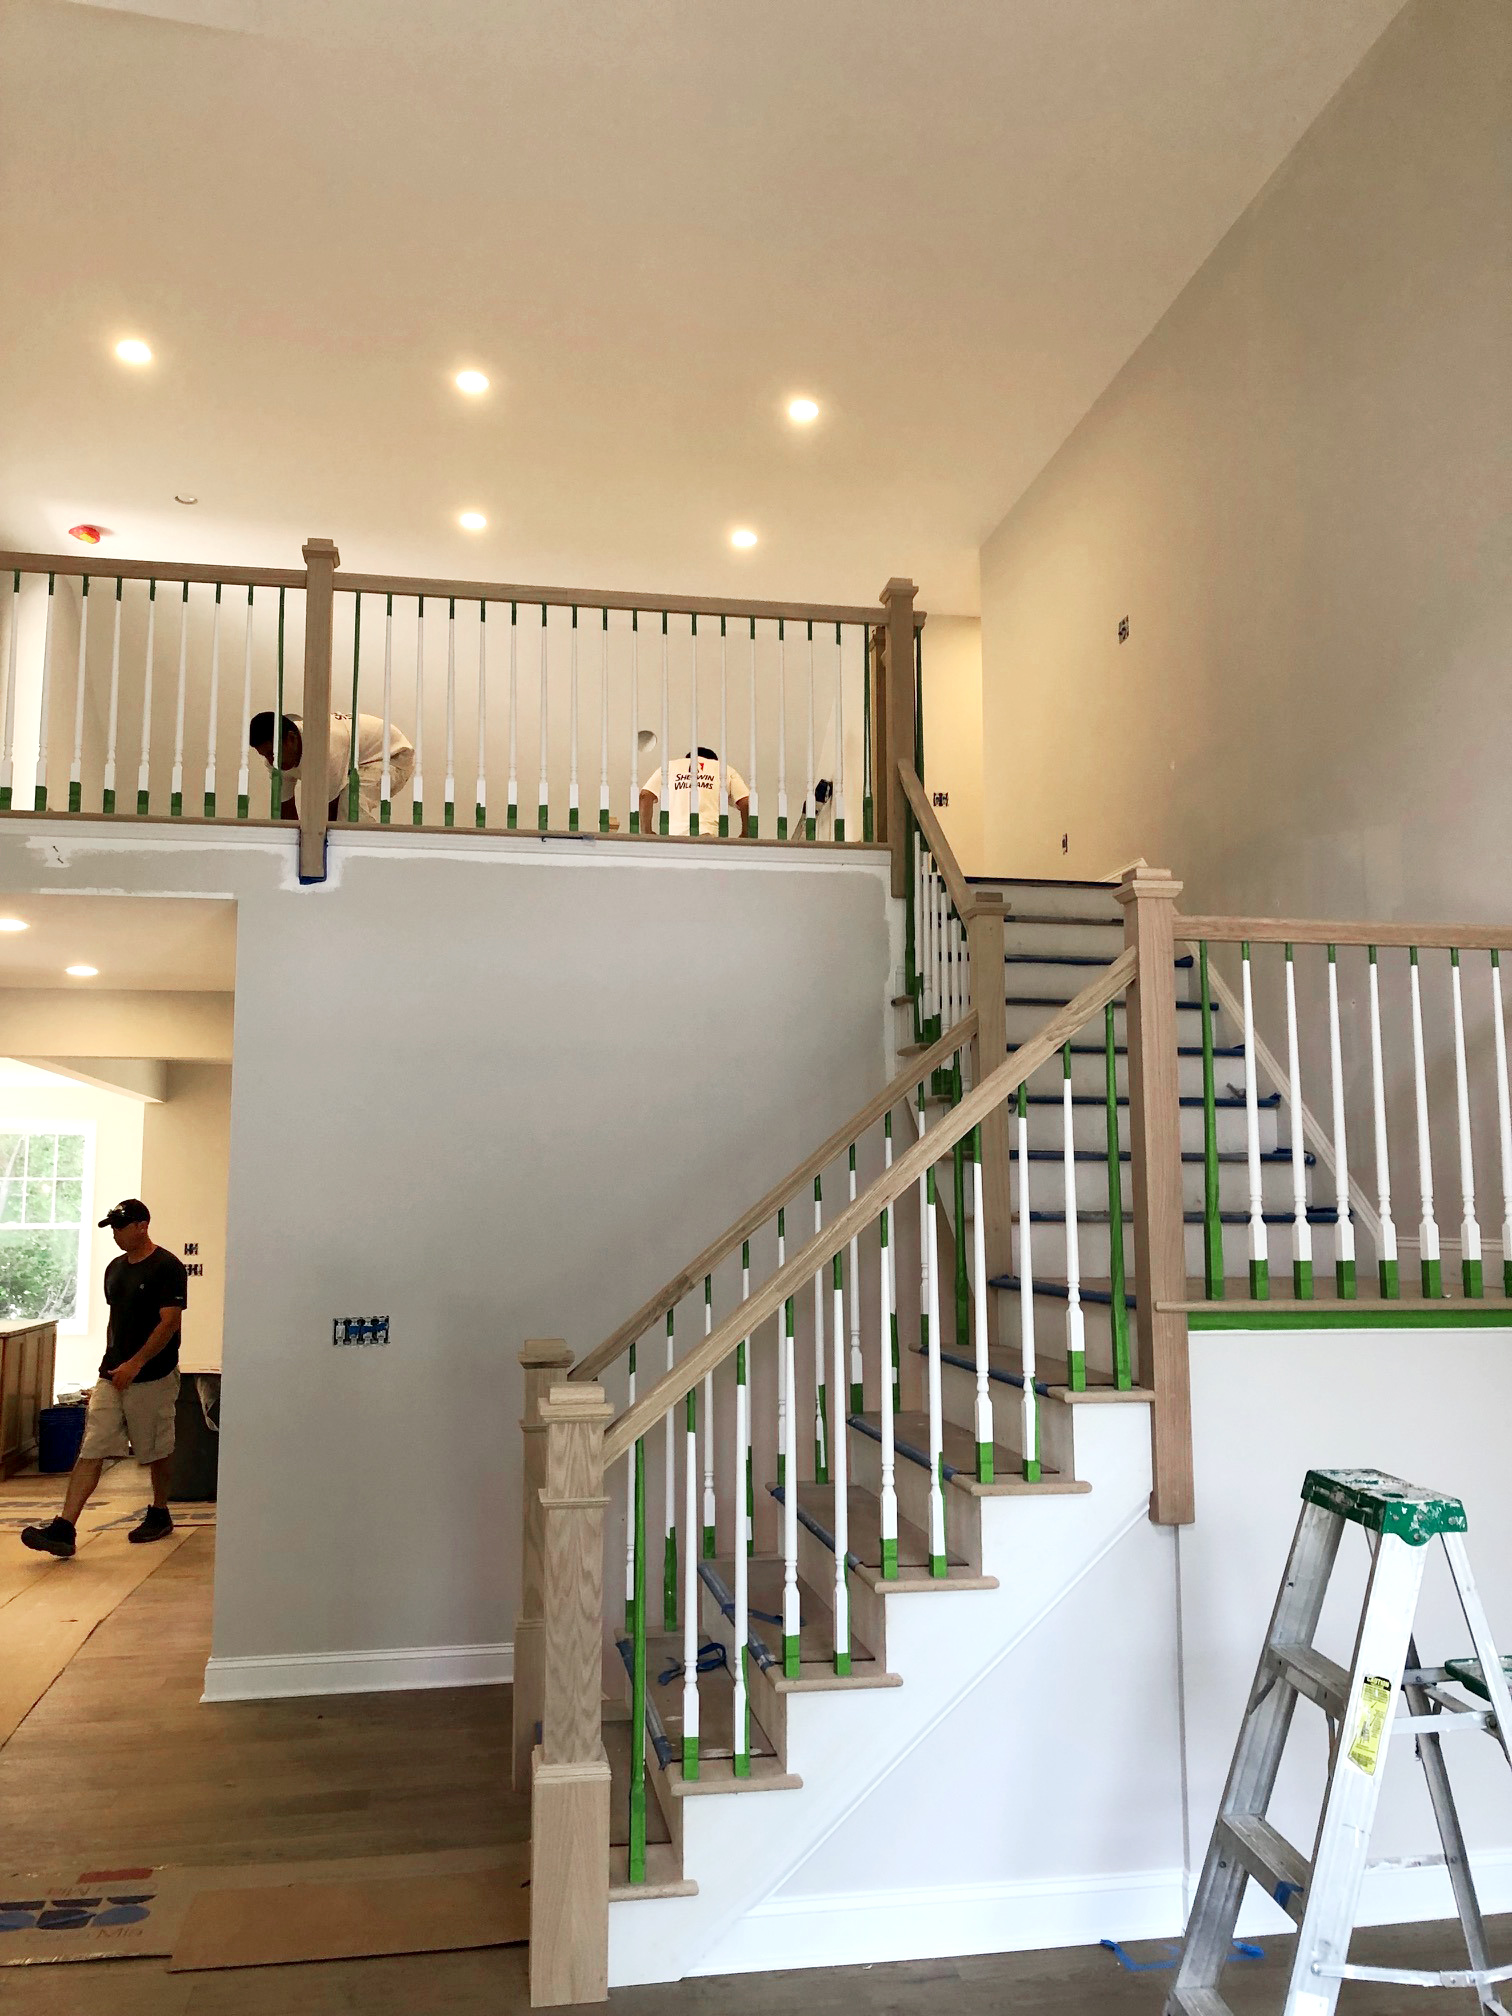 belmonte home builders 2019 saratoga showcase of homes 43 julian's way saratoga springs ny 12866 staircase